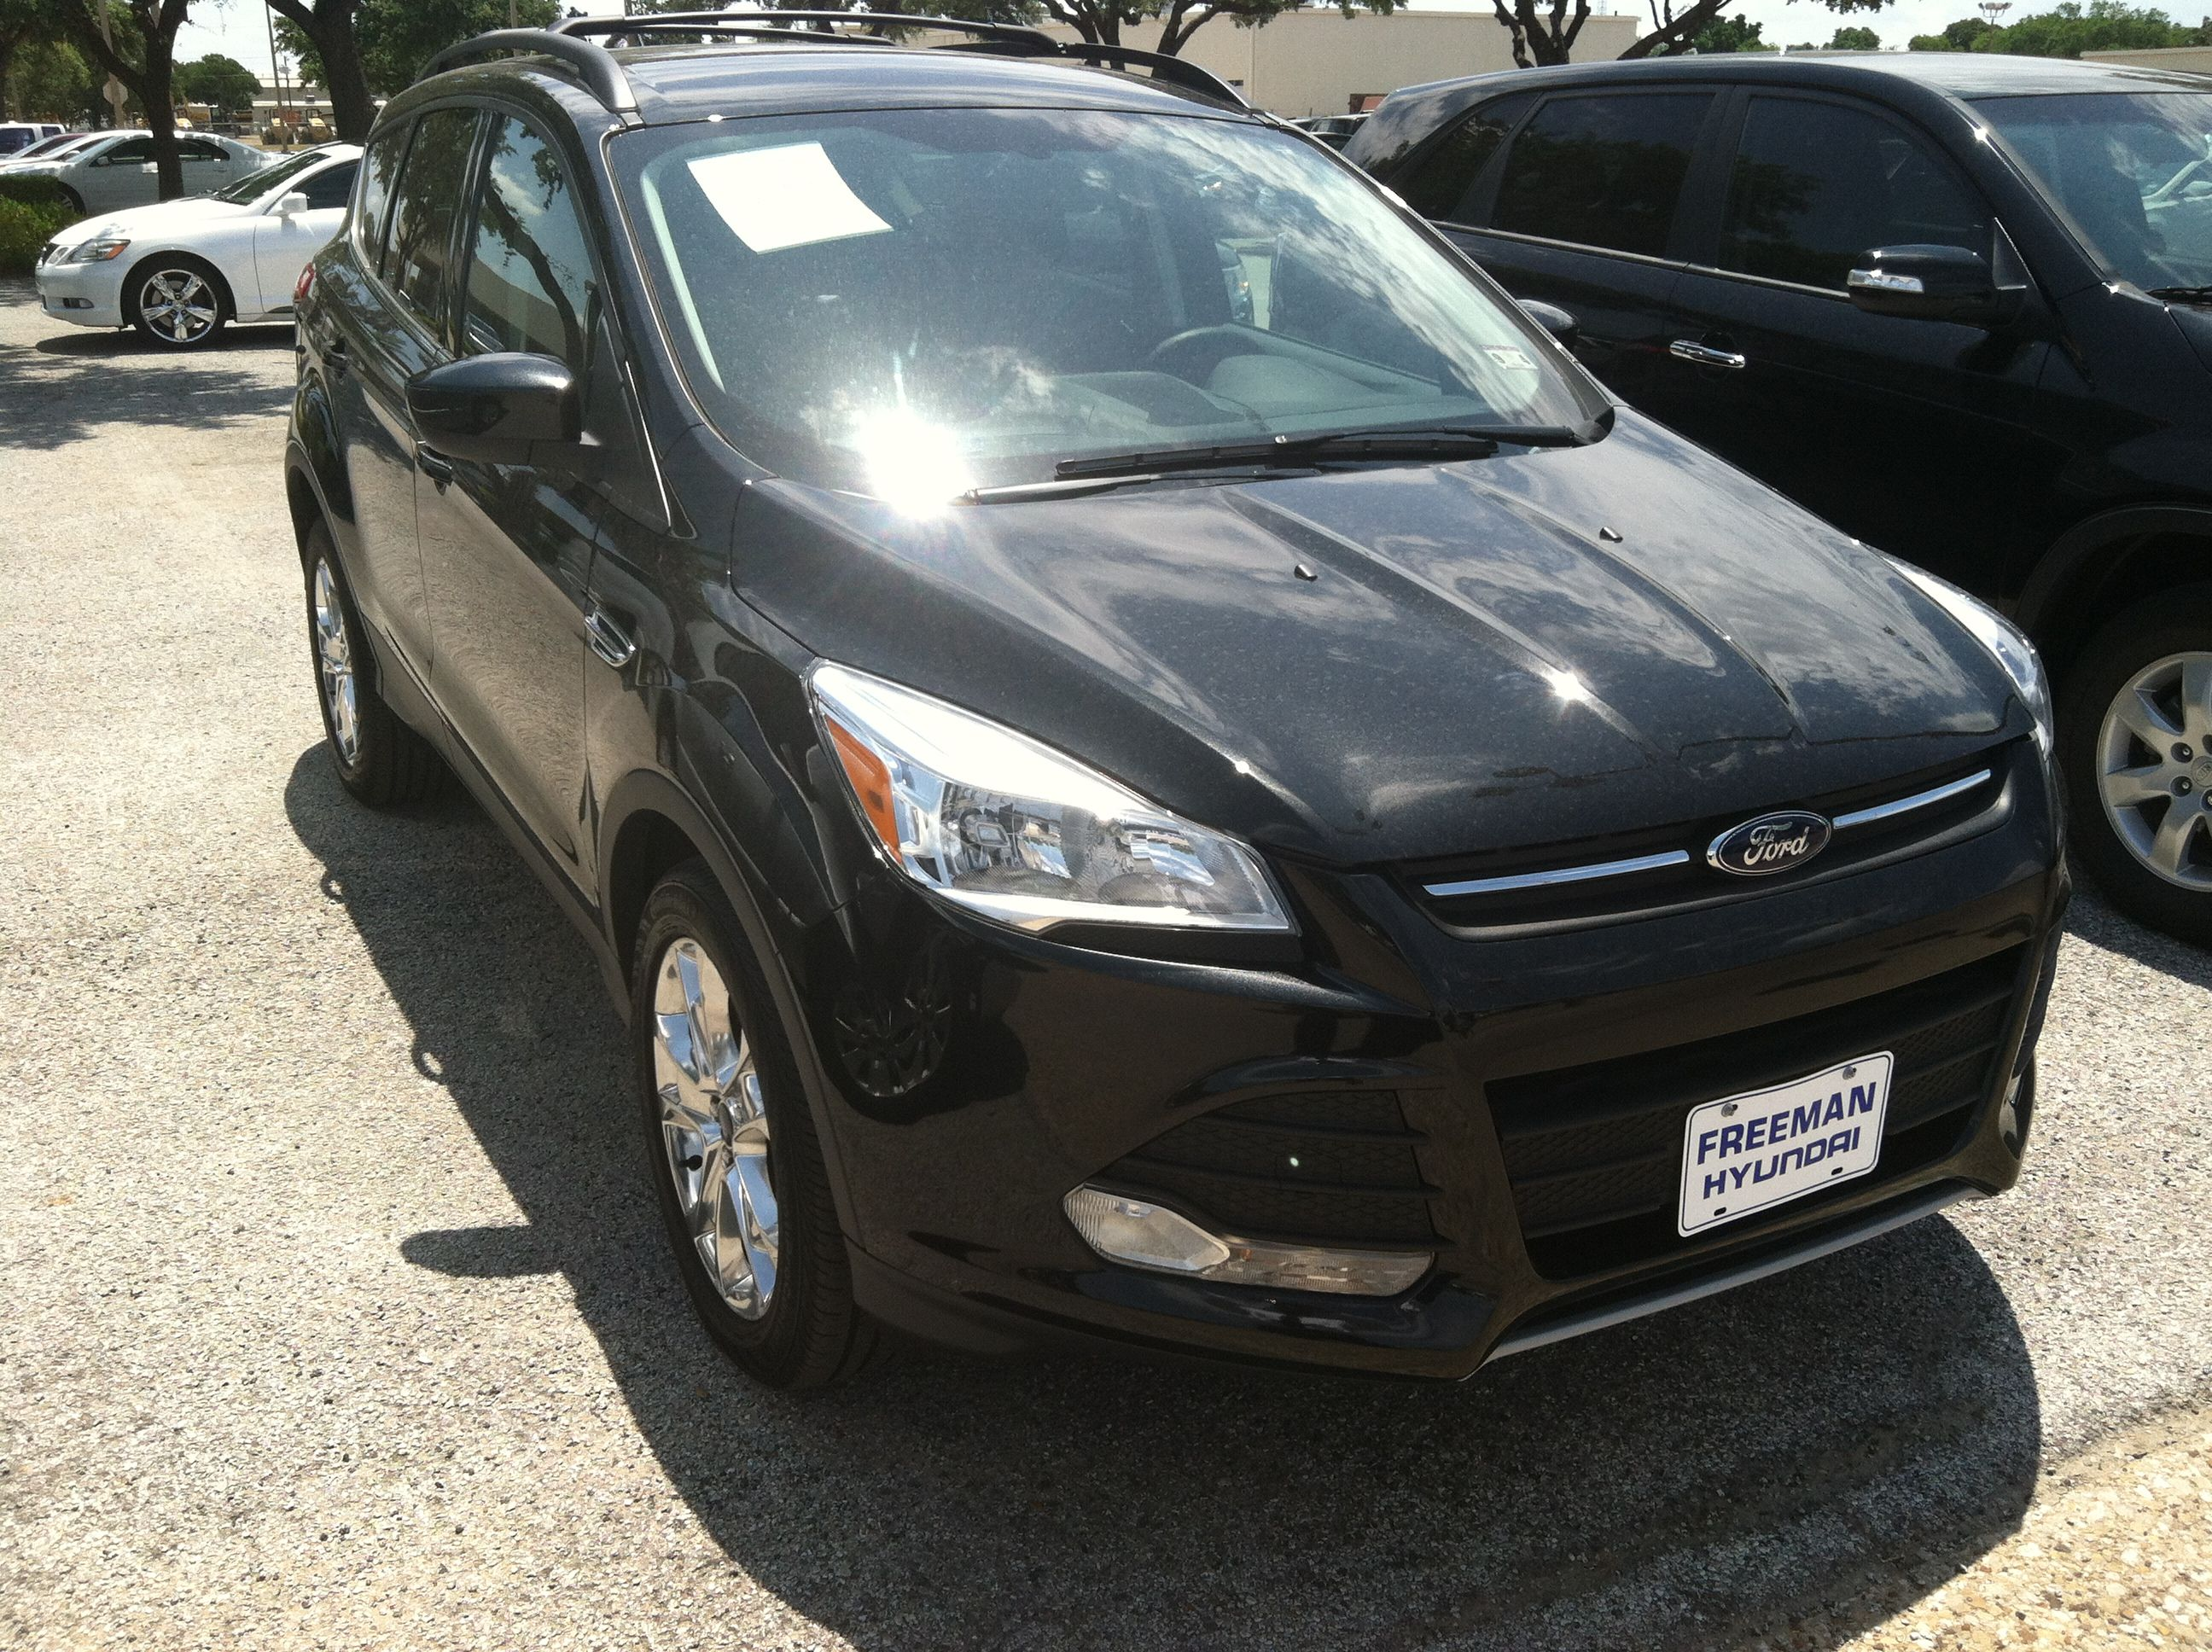 STK#PDUB07912- 2013 FORD ESCAPE w 6,000 miles NICE!!! $27,450. Call me at 817-919-4024